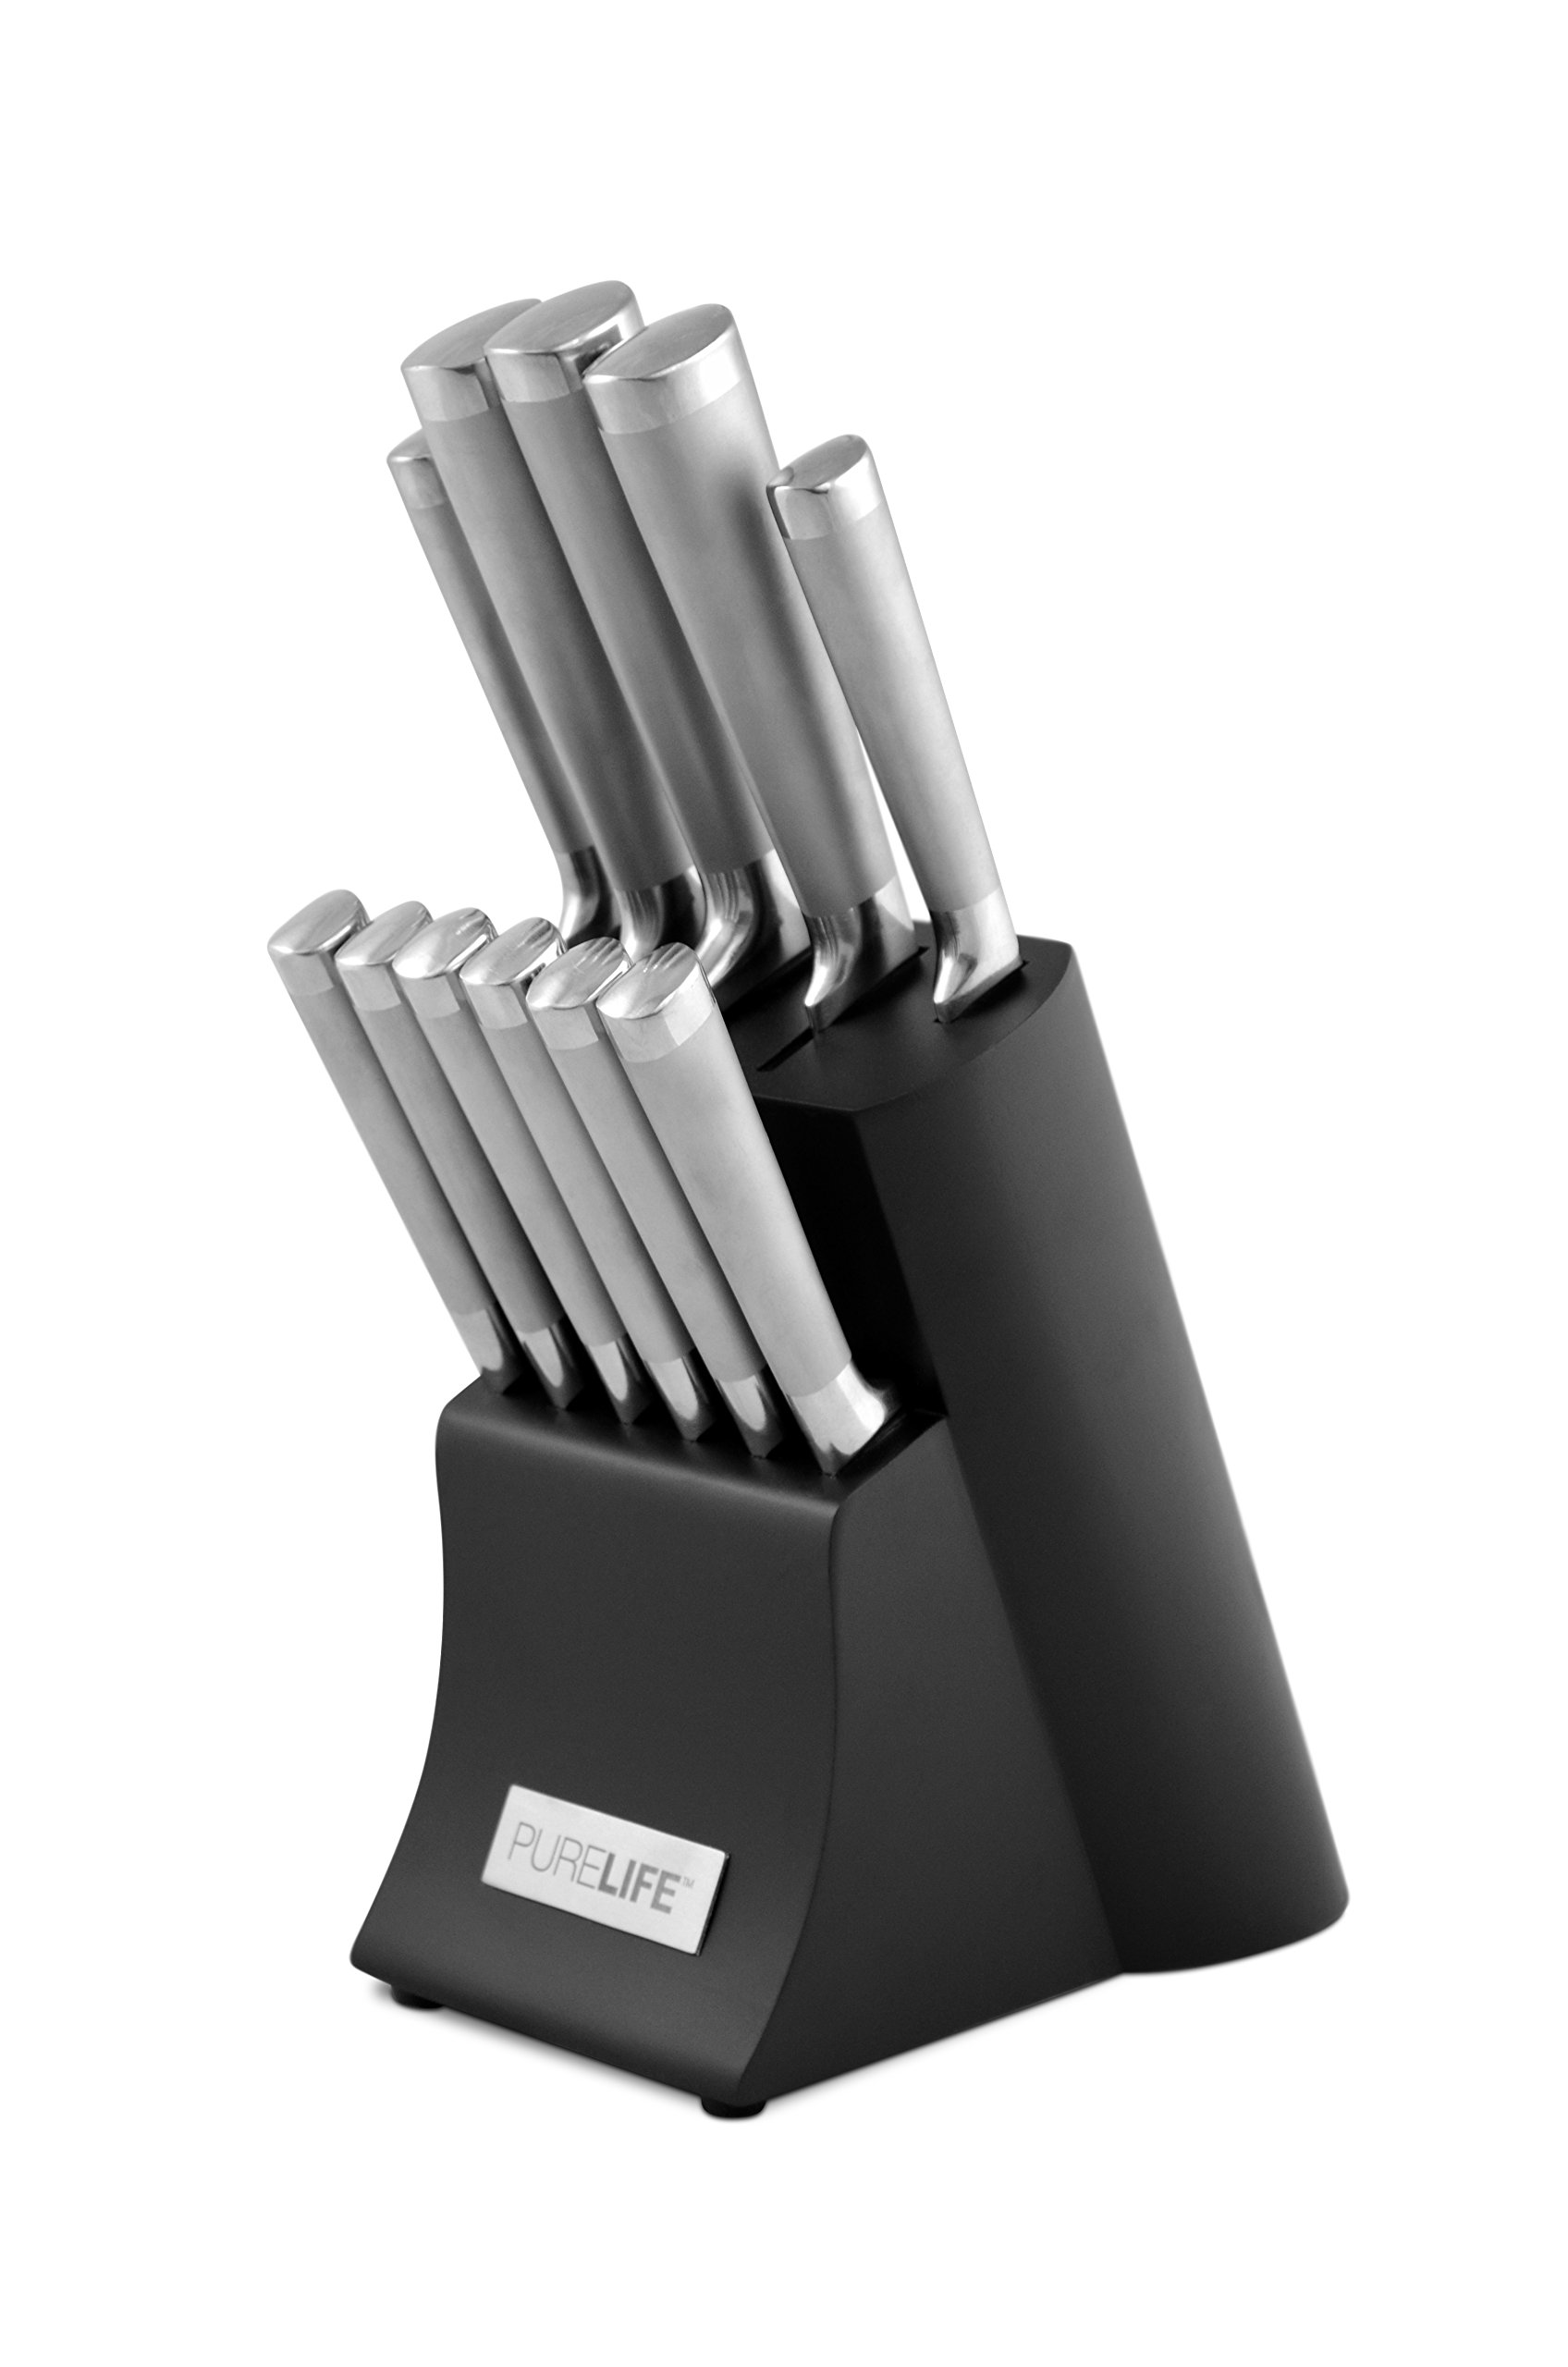 PureLife Ragalta PLKS 2200 Series 12-Piece Forged High Carbon Stainless Steel Cutlery Set with Block, Black by purelife (Image #1)